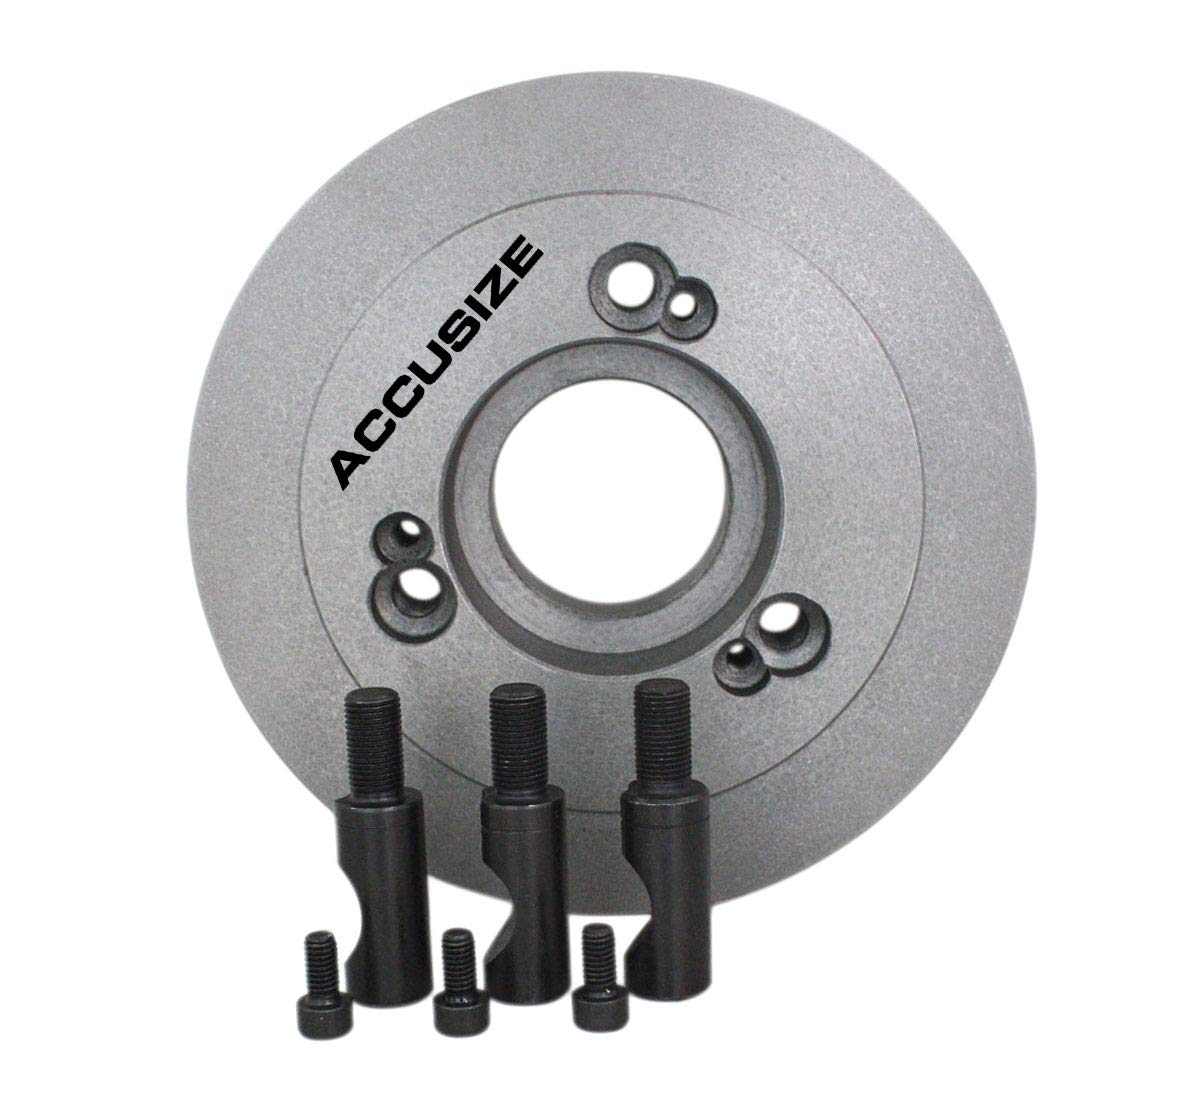 Accusize Industrial Tools 6'' Dia, D= 6.29'' Lathe Chuck Back Plate, D1 Type Adapter for Most 4 Jaw Independent Chucks, 2600-0163